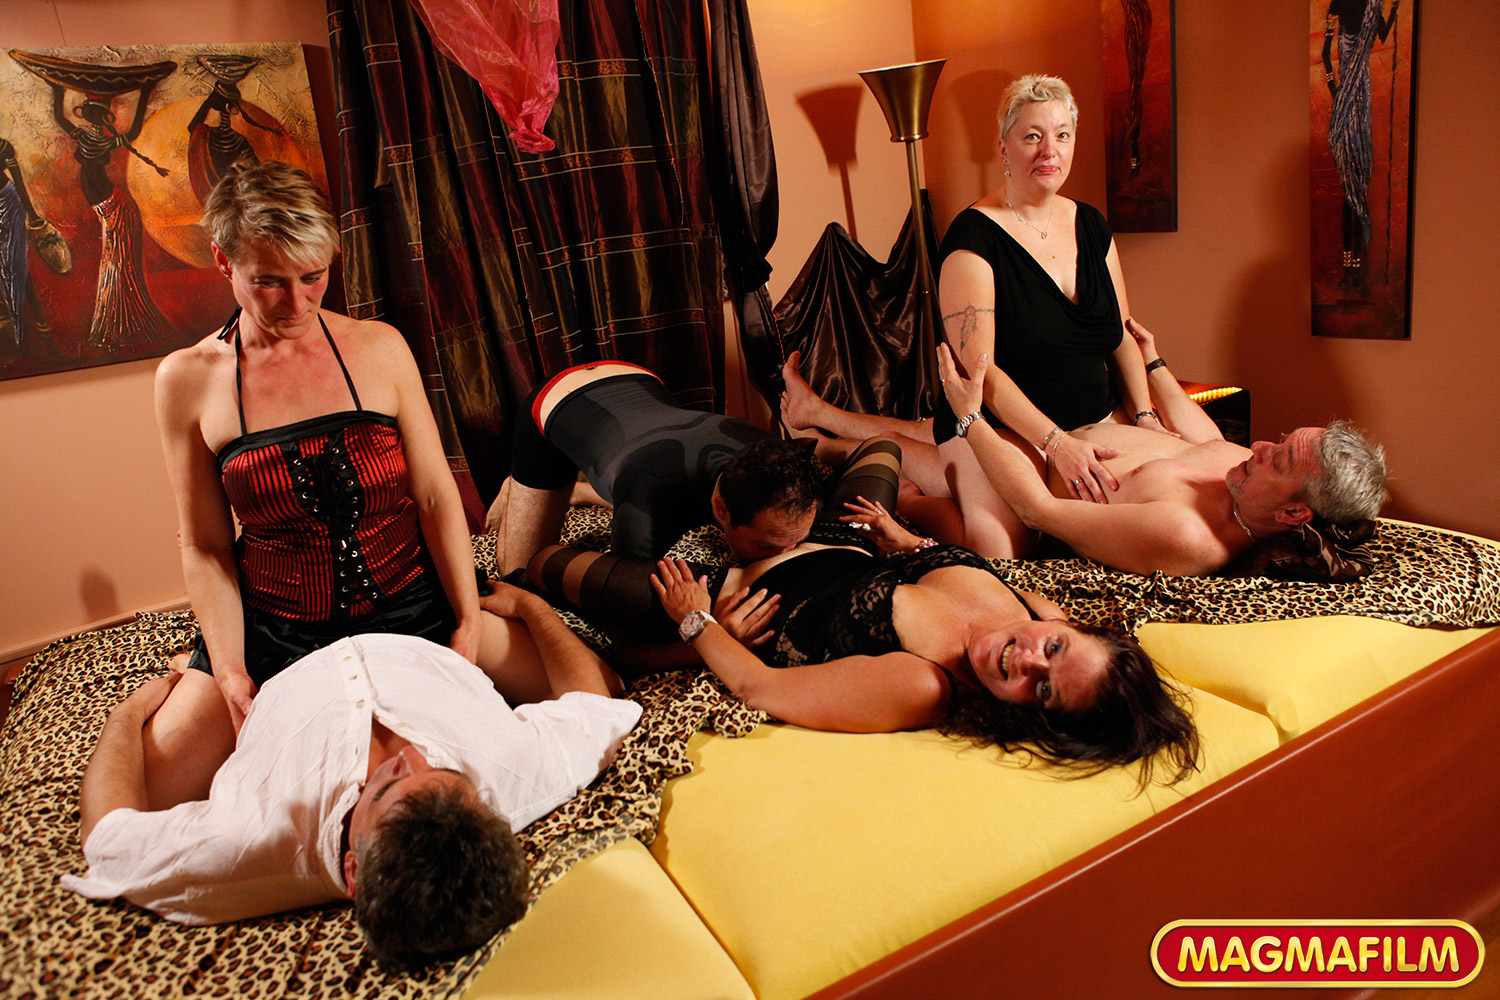 Ten Women To Every Man, A Black Market In Viagra, And A Thriving Swingers Scene